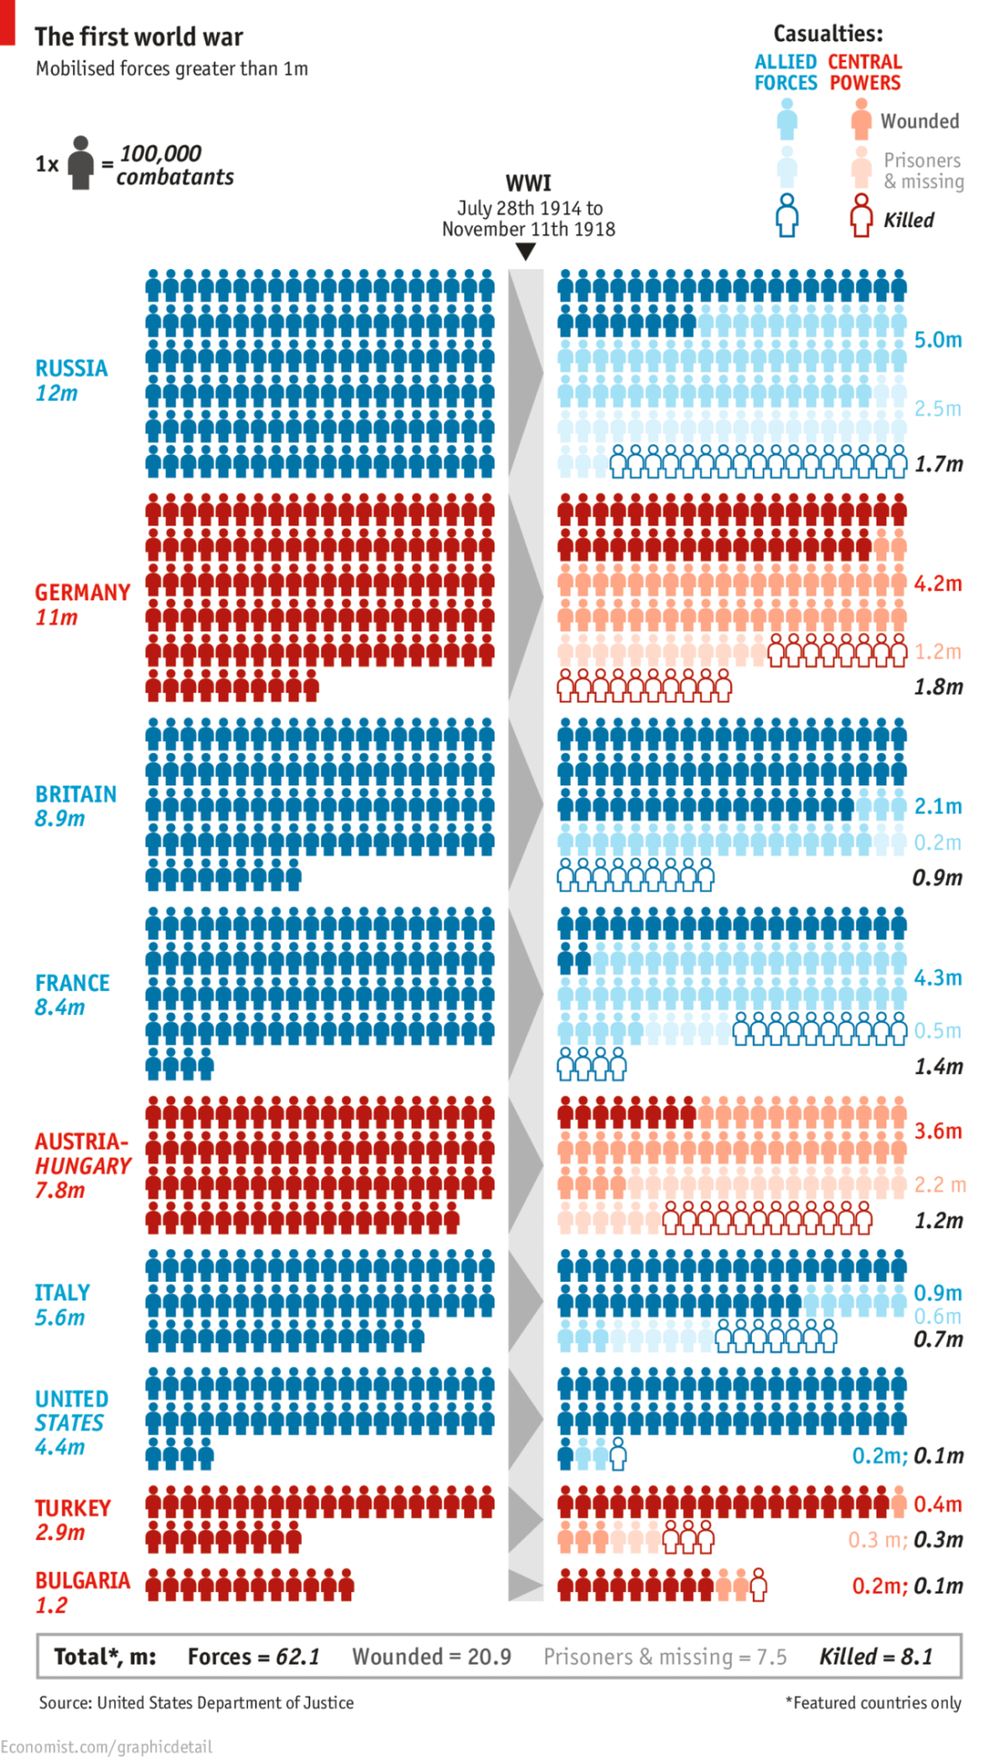 theeconomist :      Remembrance:  A chart of the first world war's  casualties  on the centenary of the outbreak     Very interesting data viz! A little too complex to read without referring to the legends repeatedly but an interesting story.